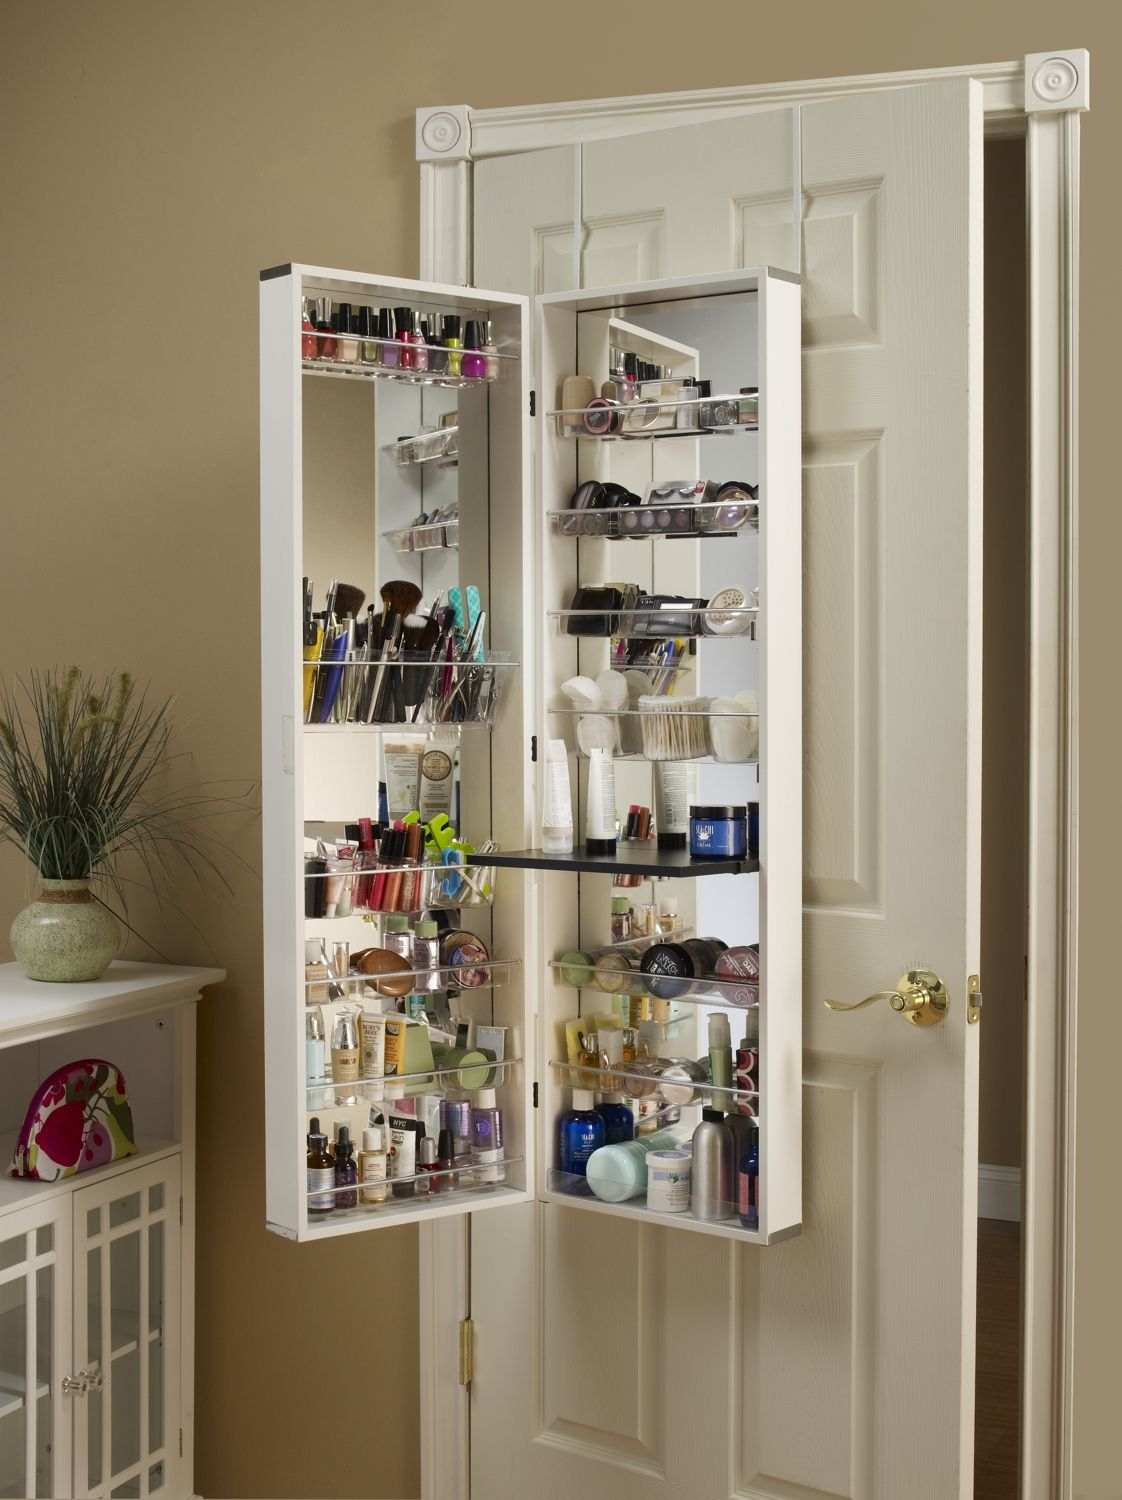 Charmant Awesome Behind The Door Makeup Organizer.